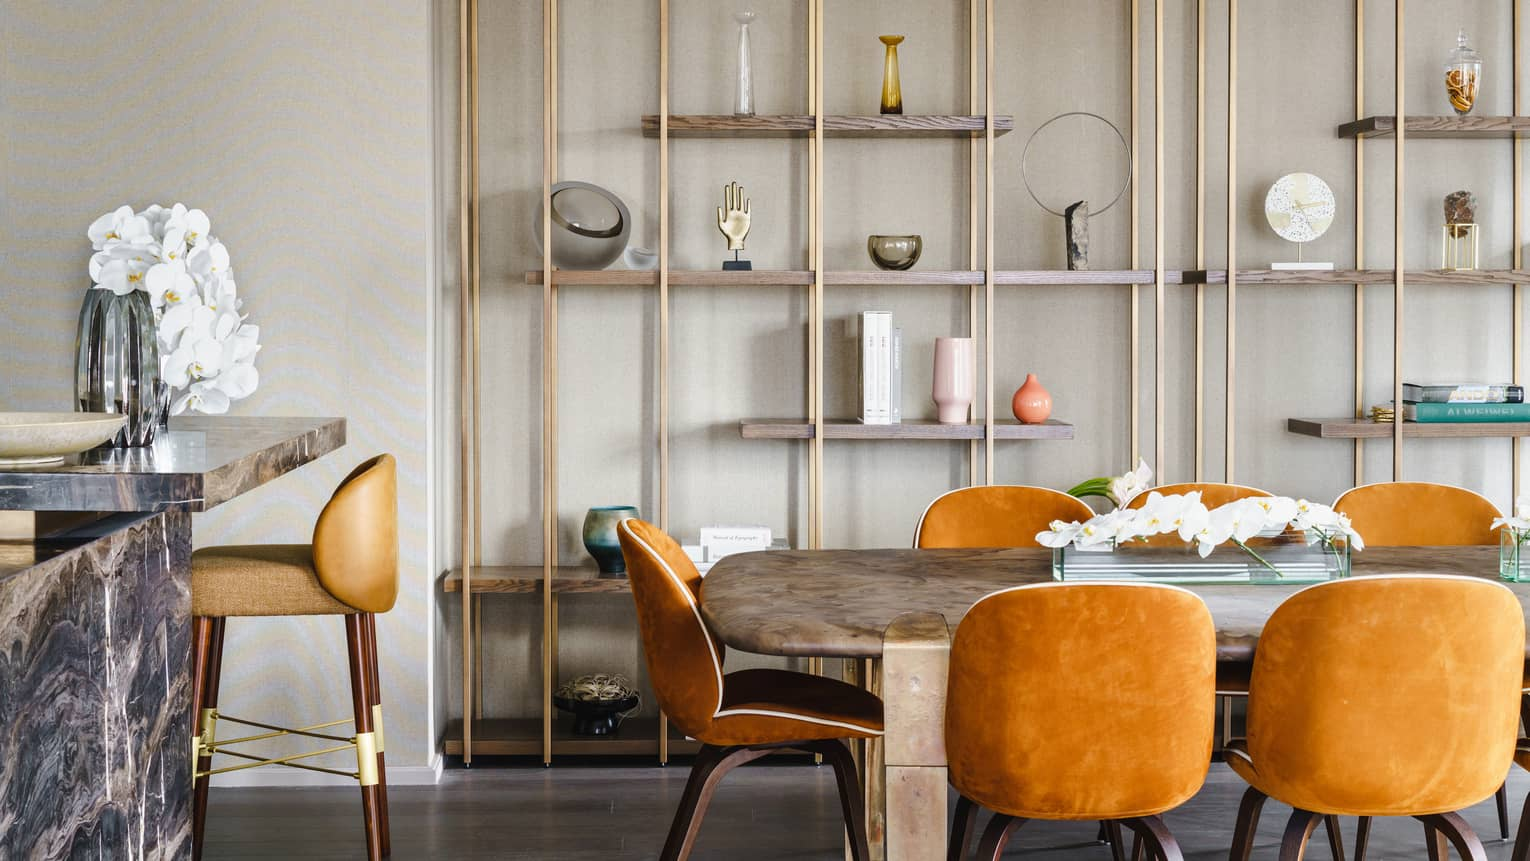 Dining table with orange velvet chairs, modern shelving on the wall, bar with high-top chair